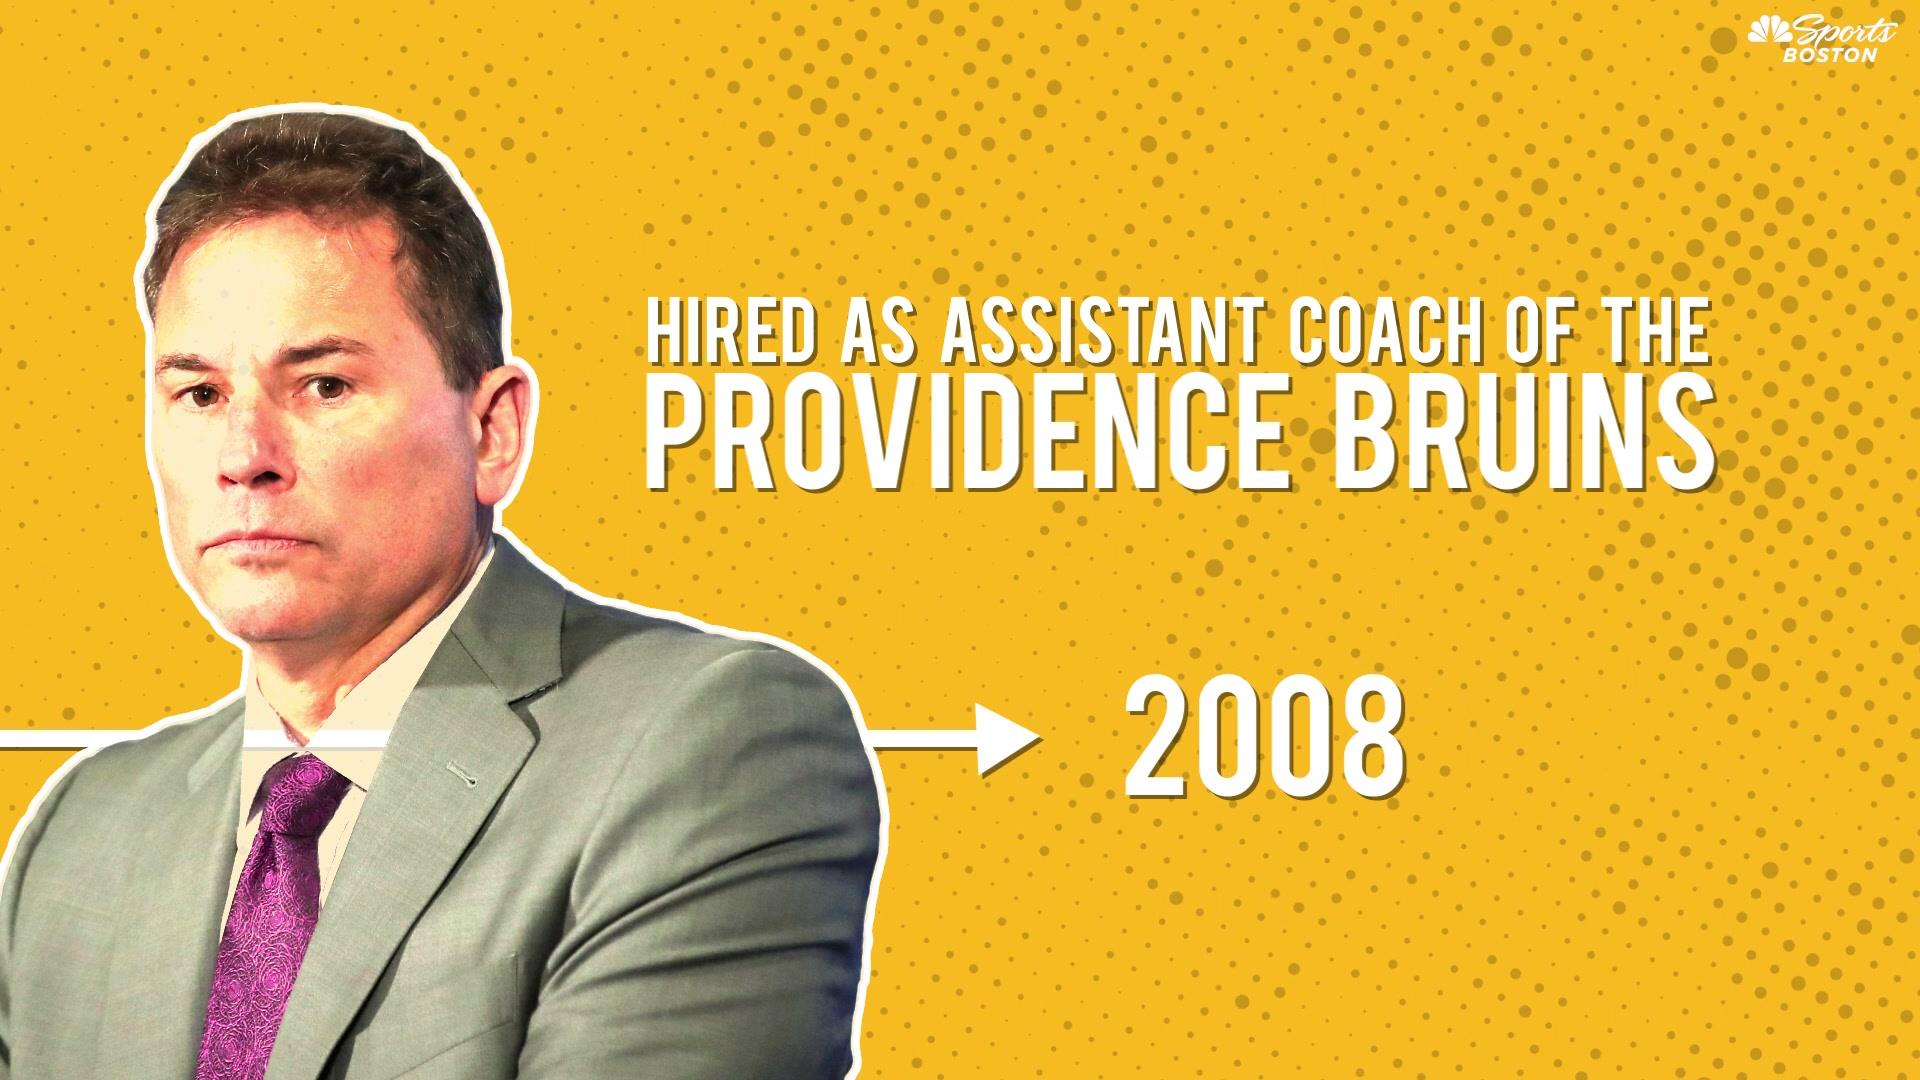 A timeline of Bruce Cassidy's coaching career in the Bruins